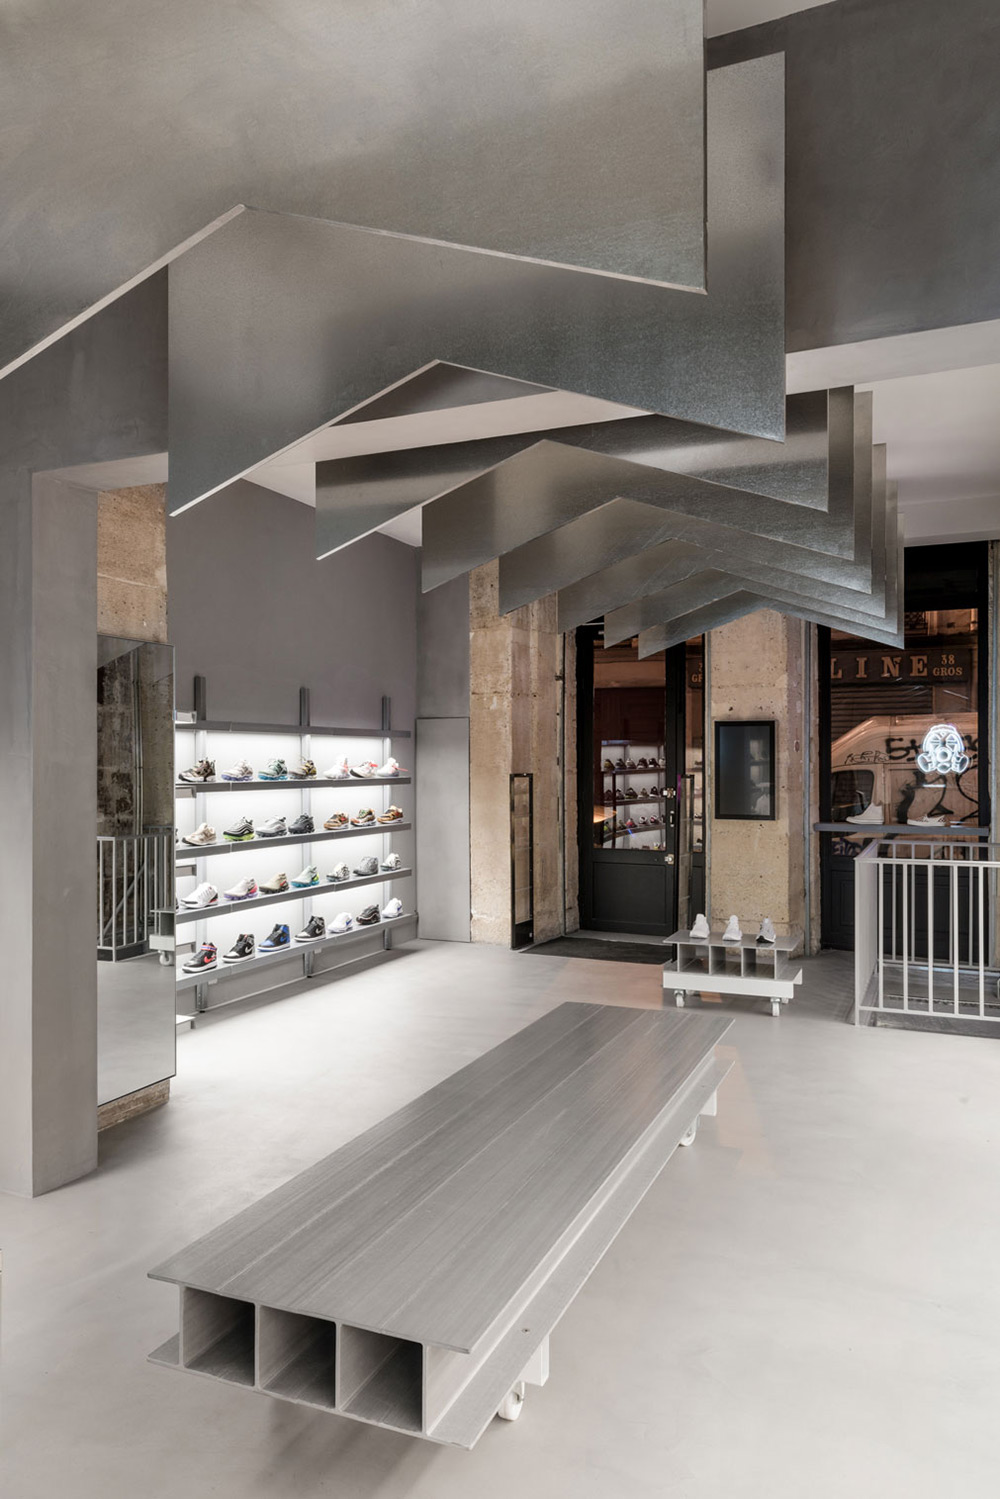 In Pictures: Footpatrol chooses Paris for its first store outside London